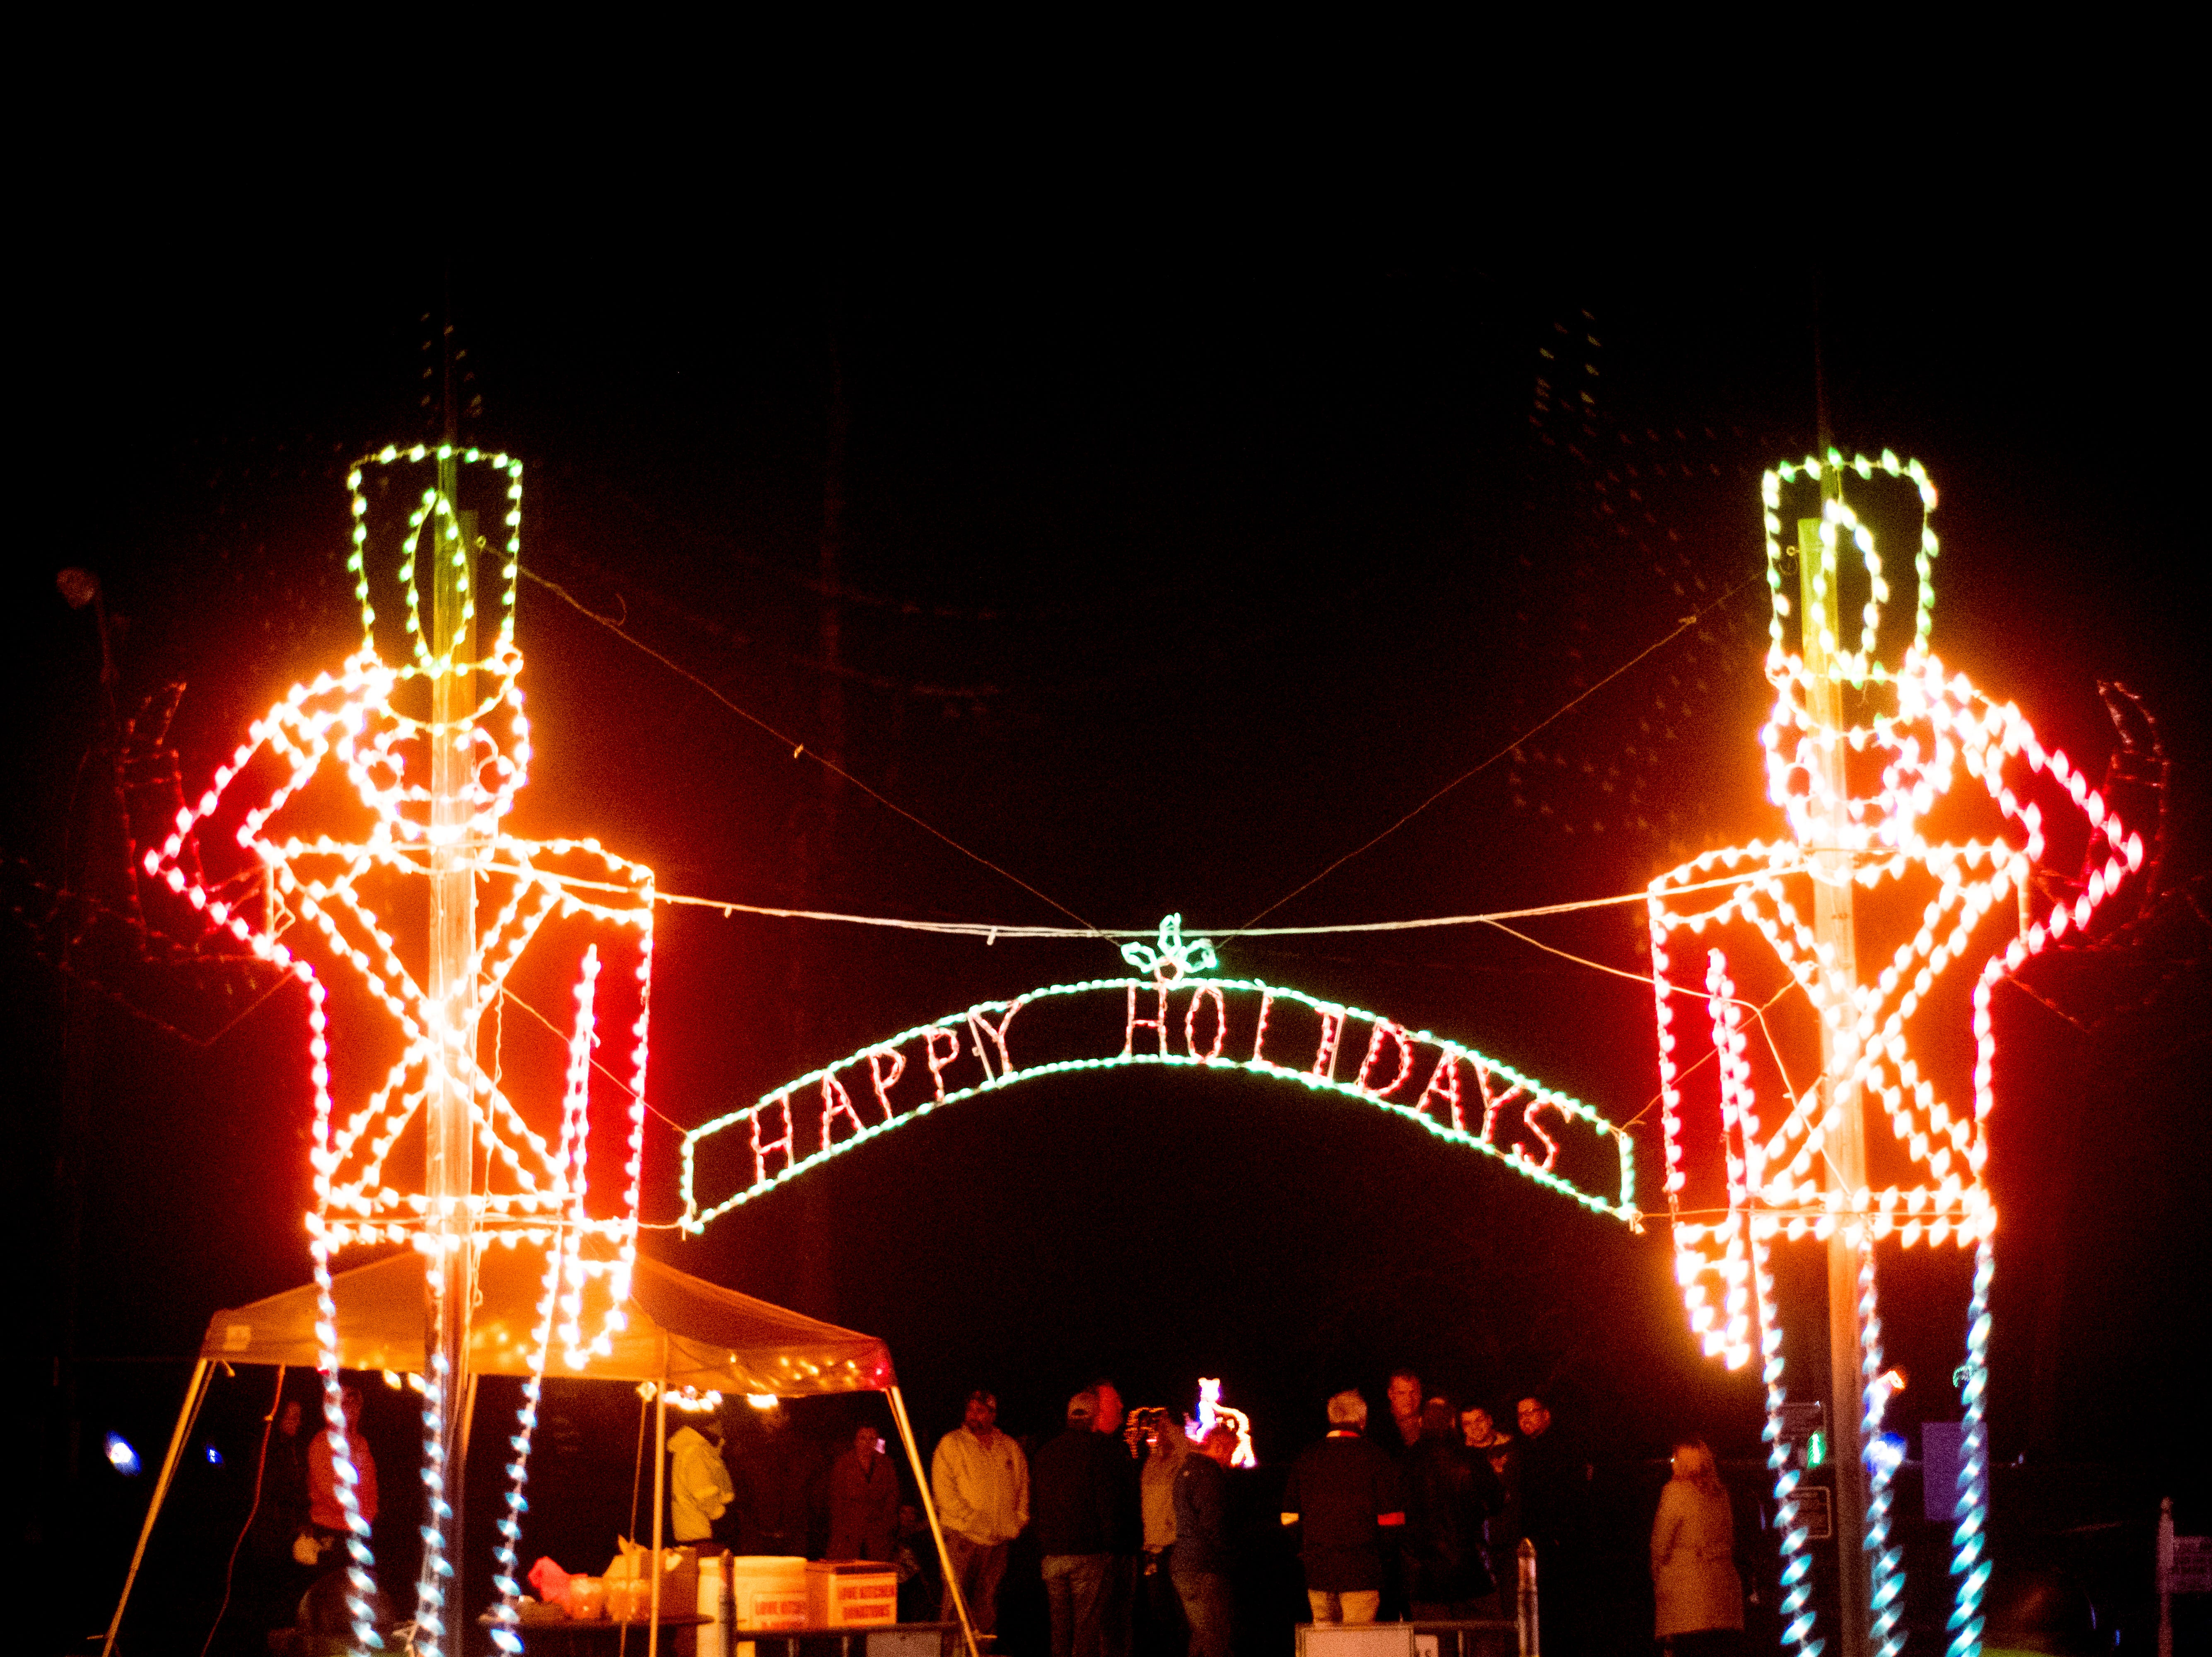 """Happy Holidays"" reads a greeting above the entrance at Knox CountyÕs 20th annual Holiday Festival of Lights kick off at The Cove at Concord Park in Farragut, Tennessee on Friday, December 21, 2018. The family-friendly event is free and will run through Dec. 29 from 6 to 9 p.m., excluding Christmas Eve and Christmas Day."